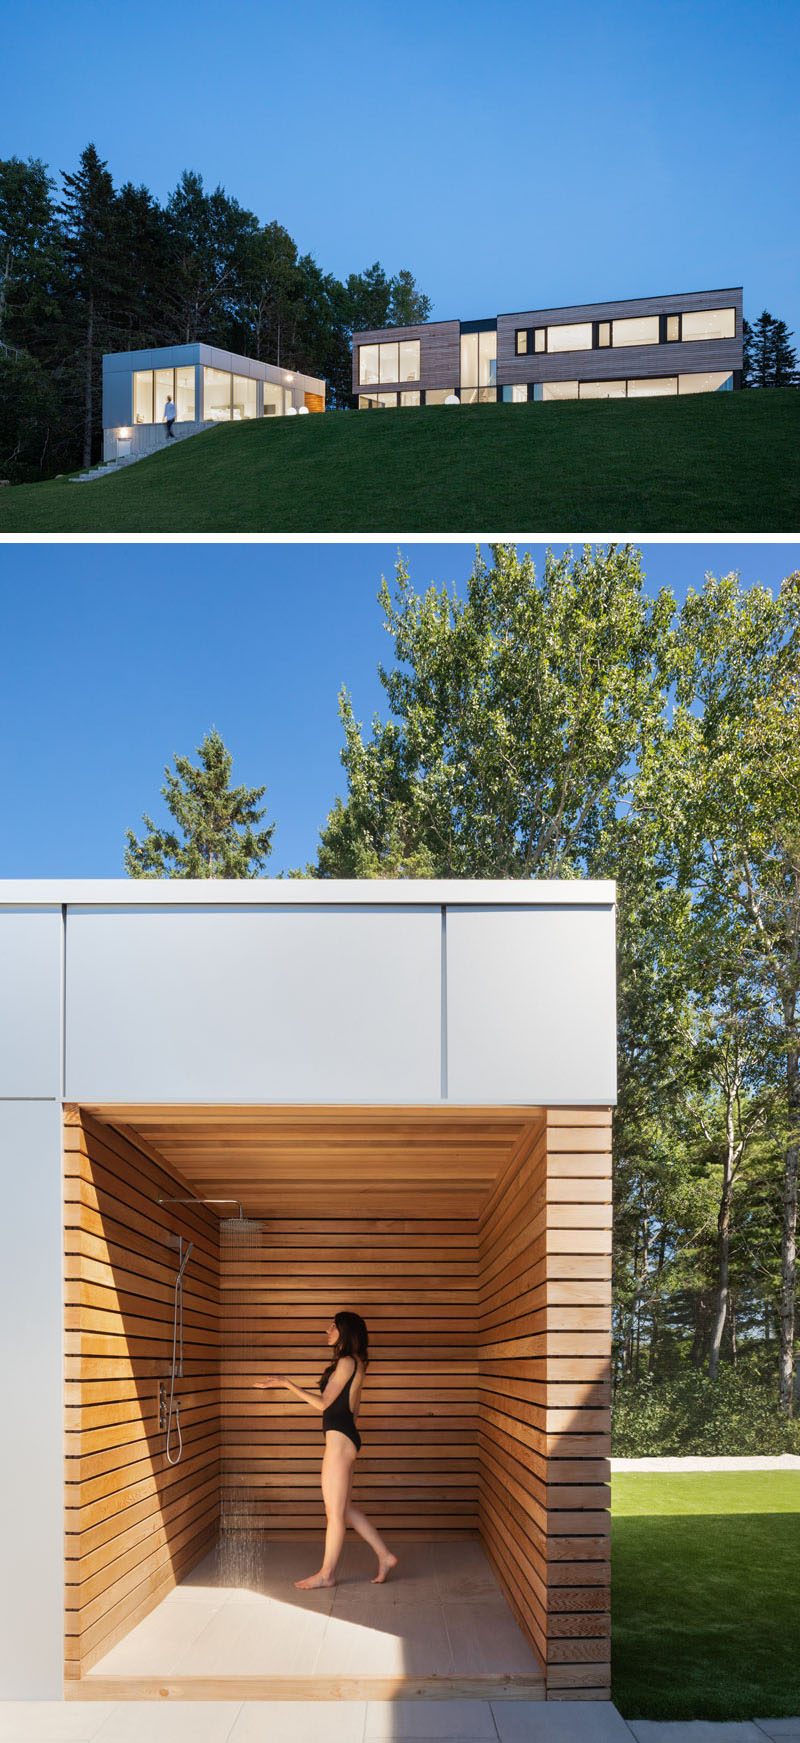 This modern house has an adjacent guest house with a bedroom, living room / kitchen, a bathroom, and a outdoor shower. #GuestHouse #ModernHouse #OutdoorShower